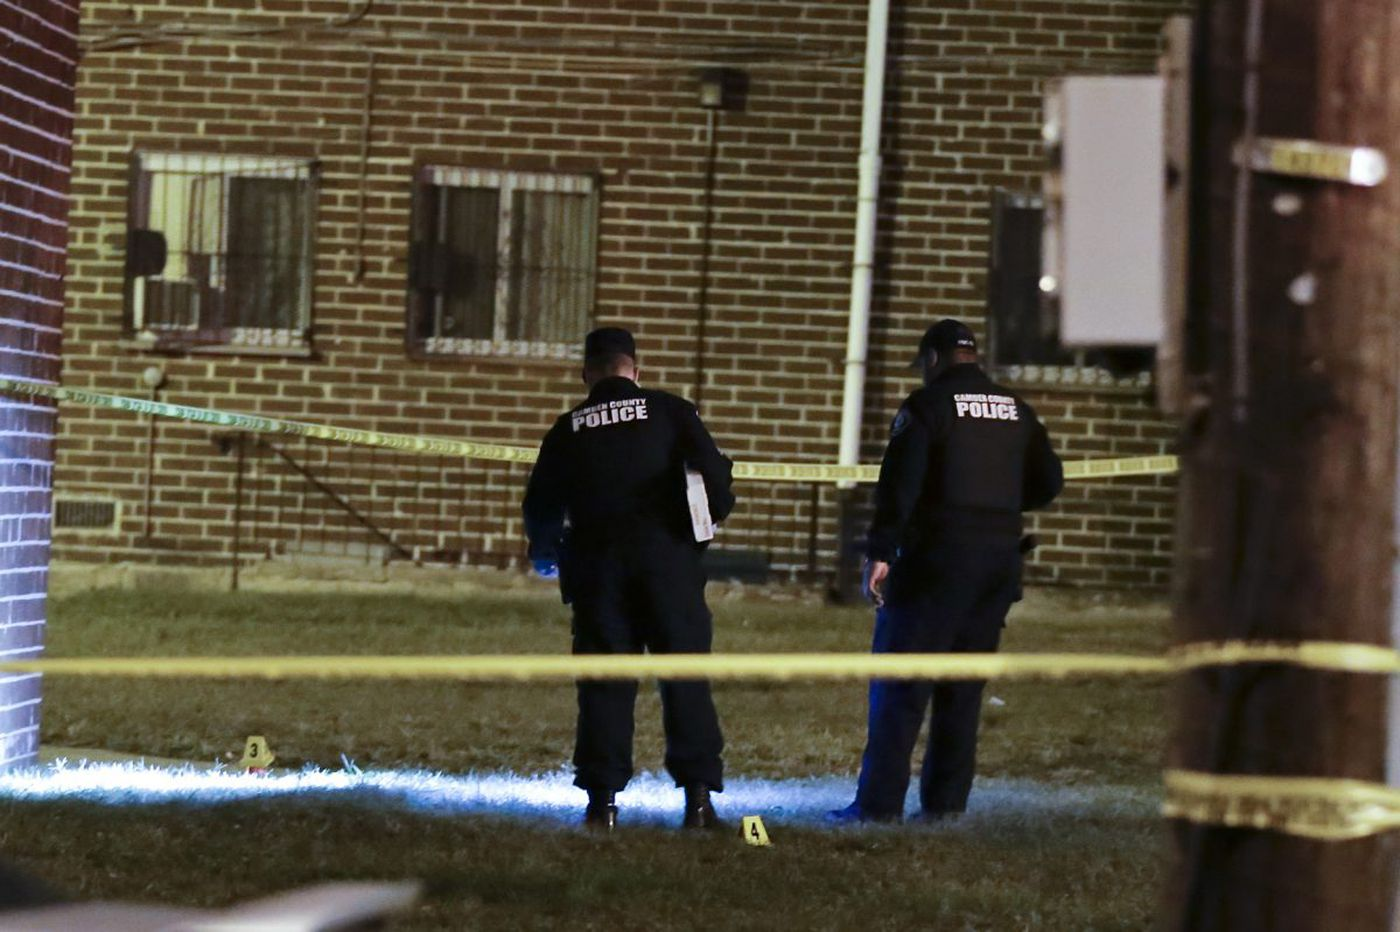 Police: Jammed gun saved Camden police officer from being shot in the face